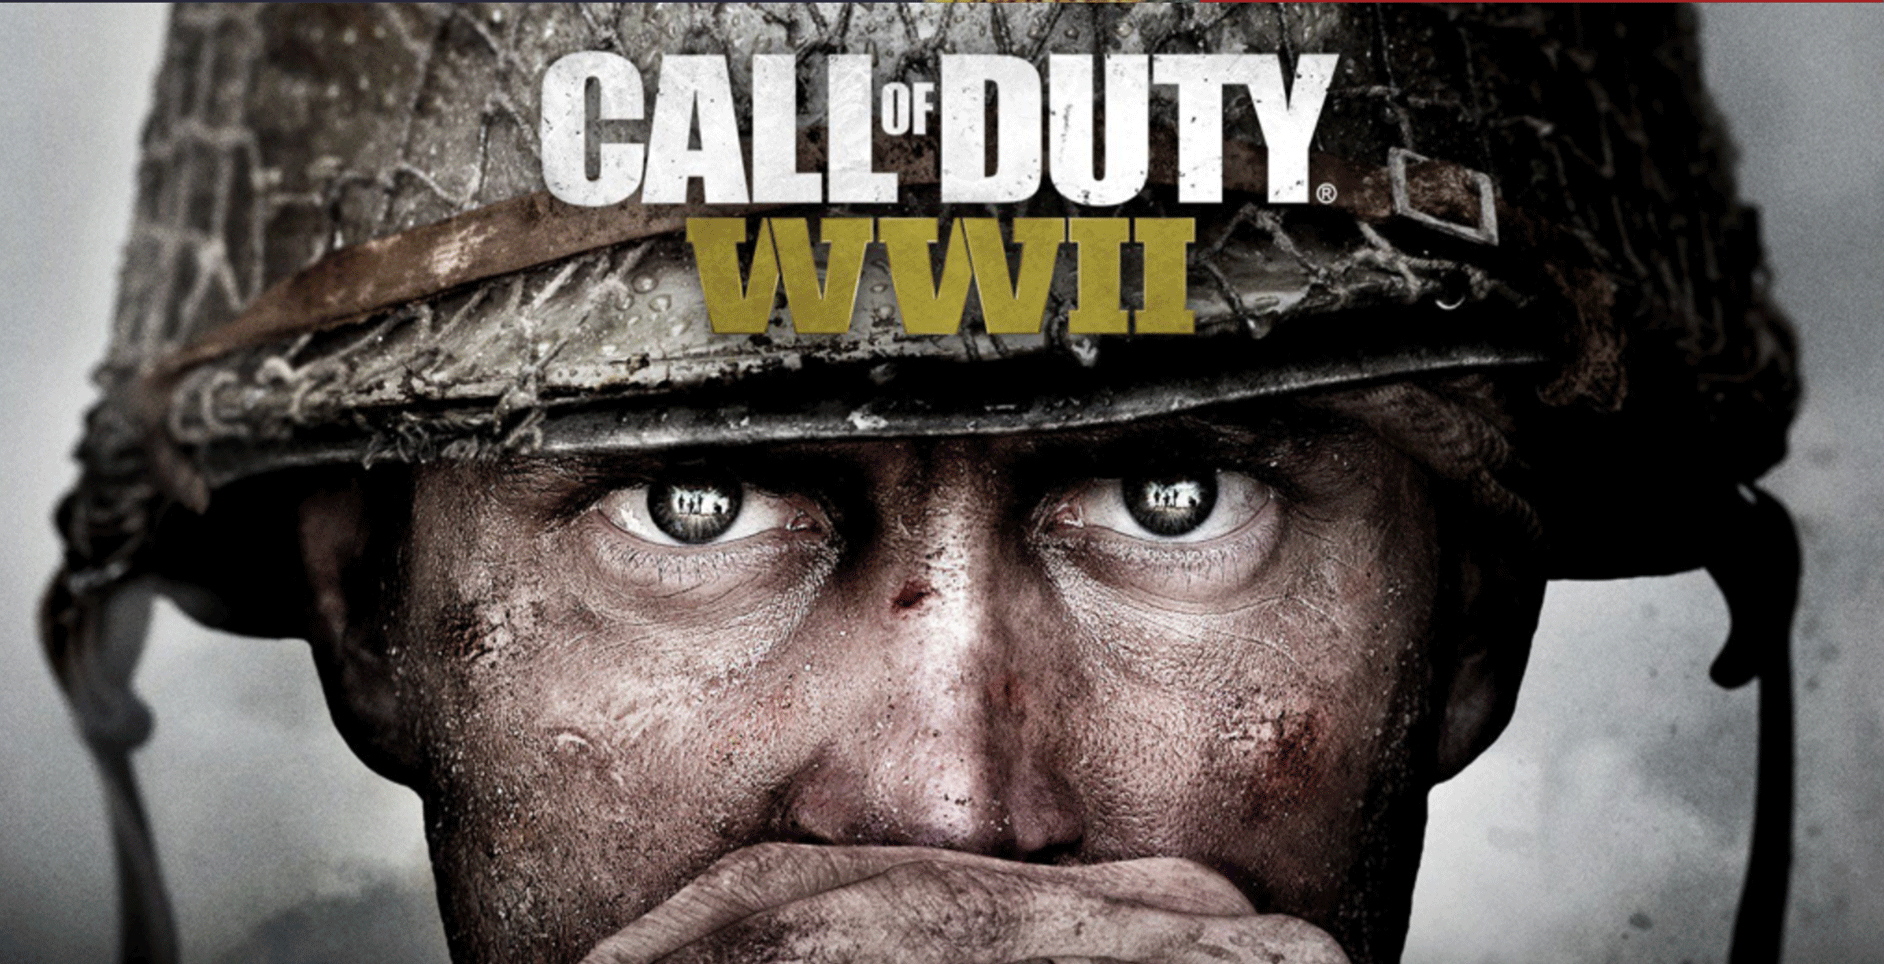 Test : Call of Duty : World War II – Le retour du boots on the ground ! | PXLBBQ